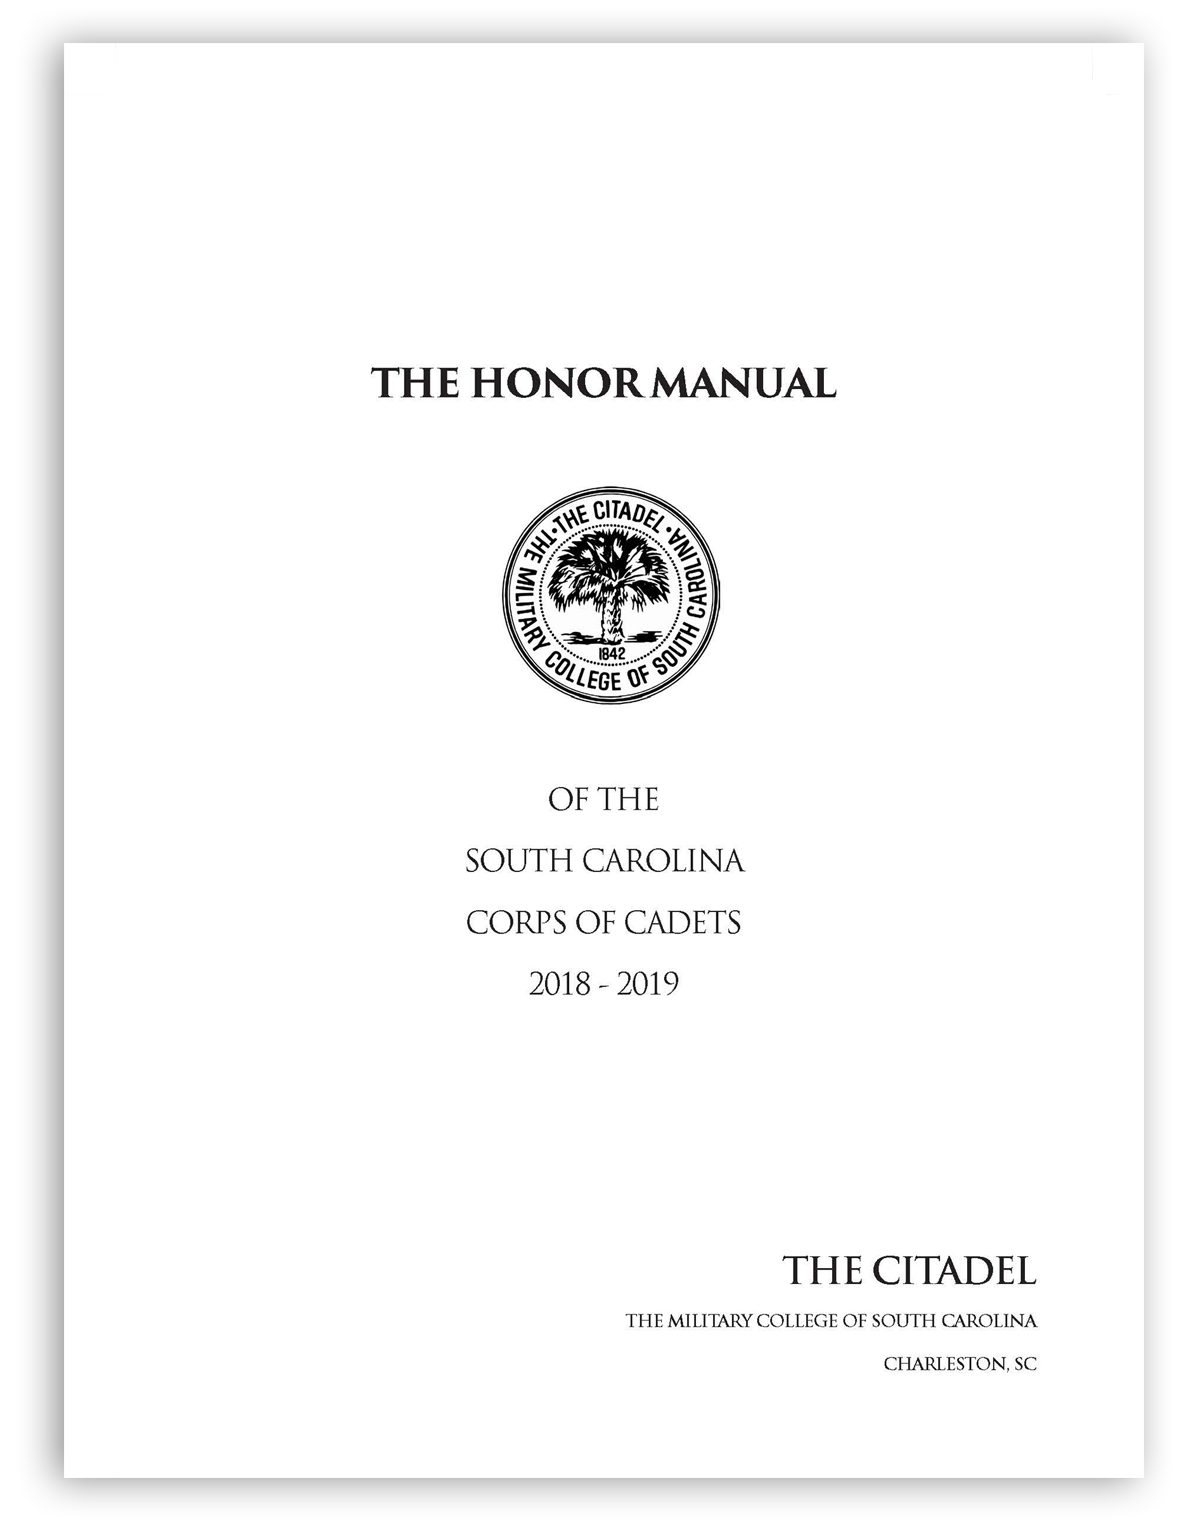 honor manual cover